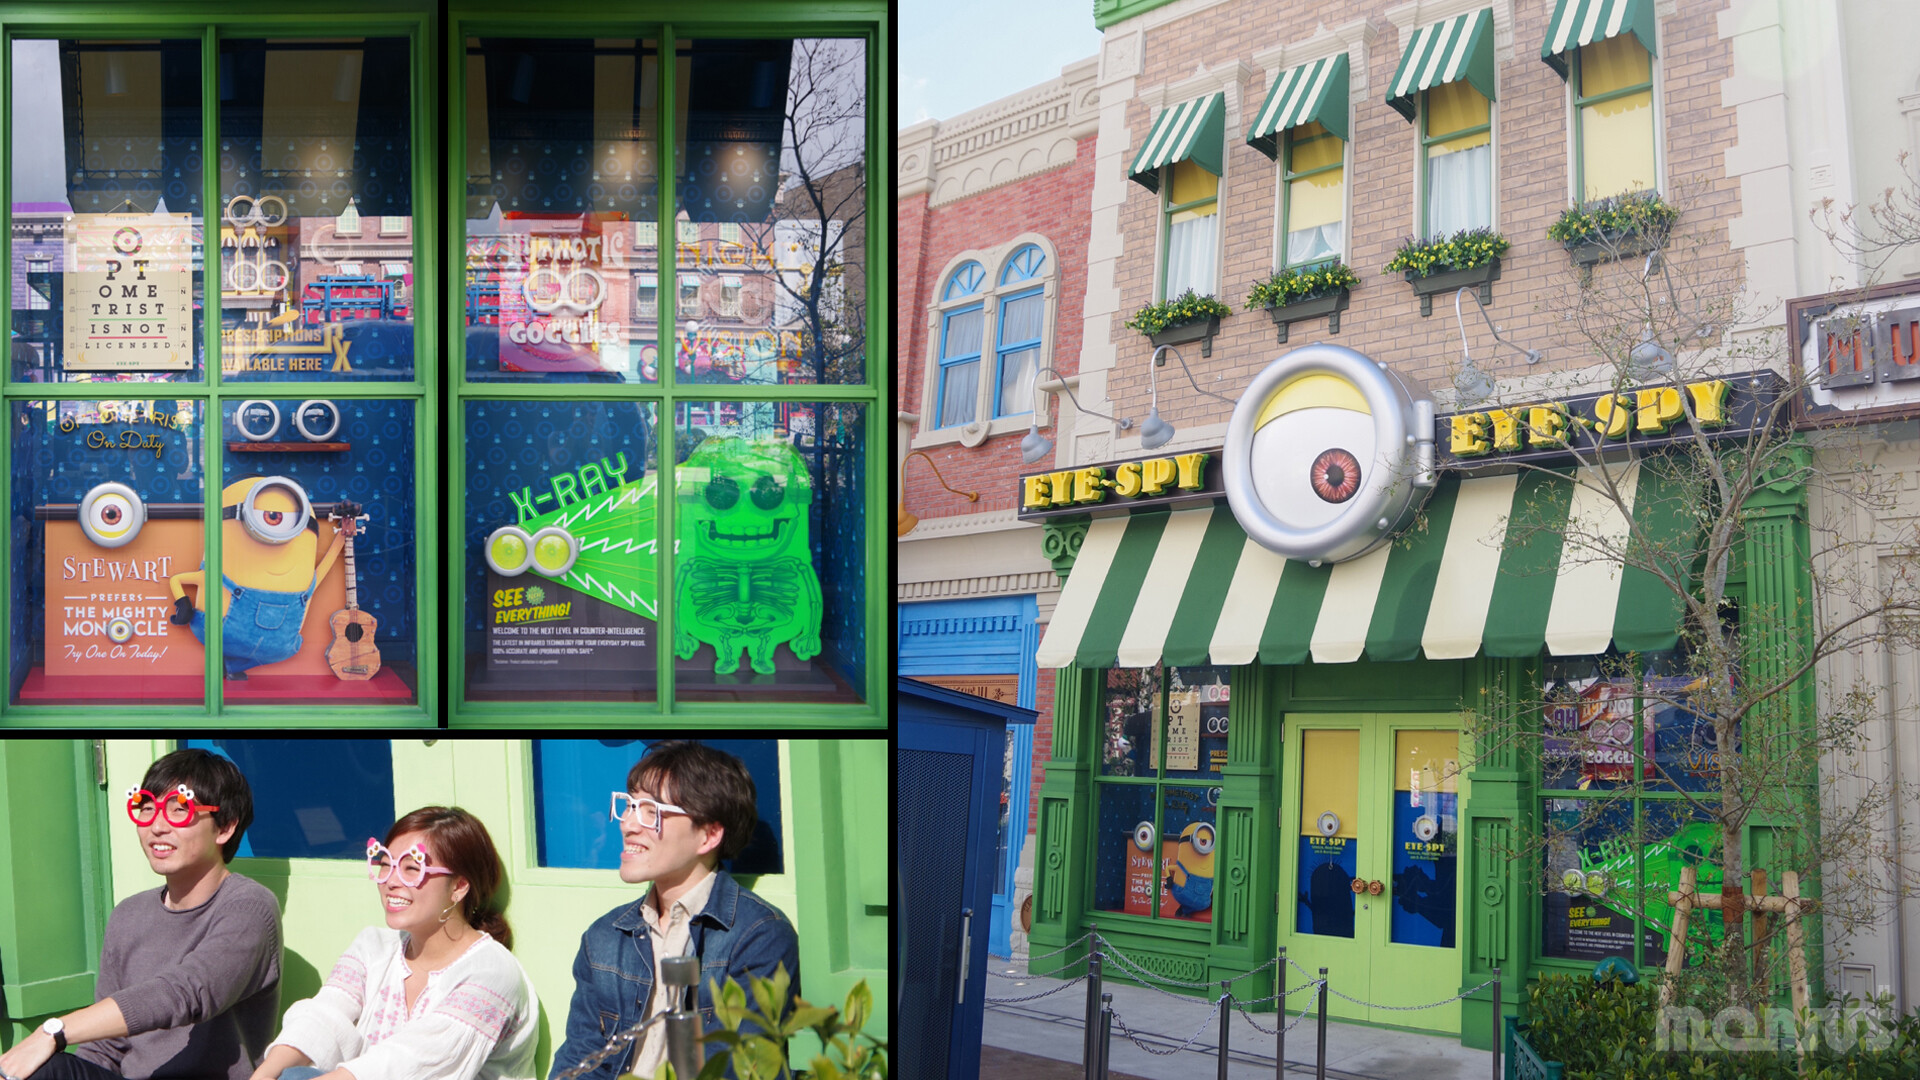 EYE SPY - one of the many facades in Minion Park